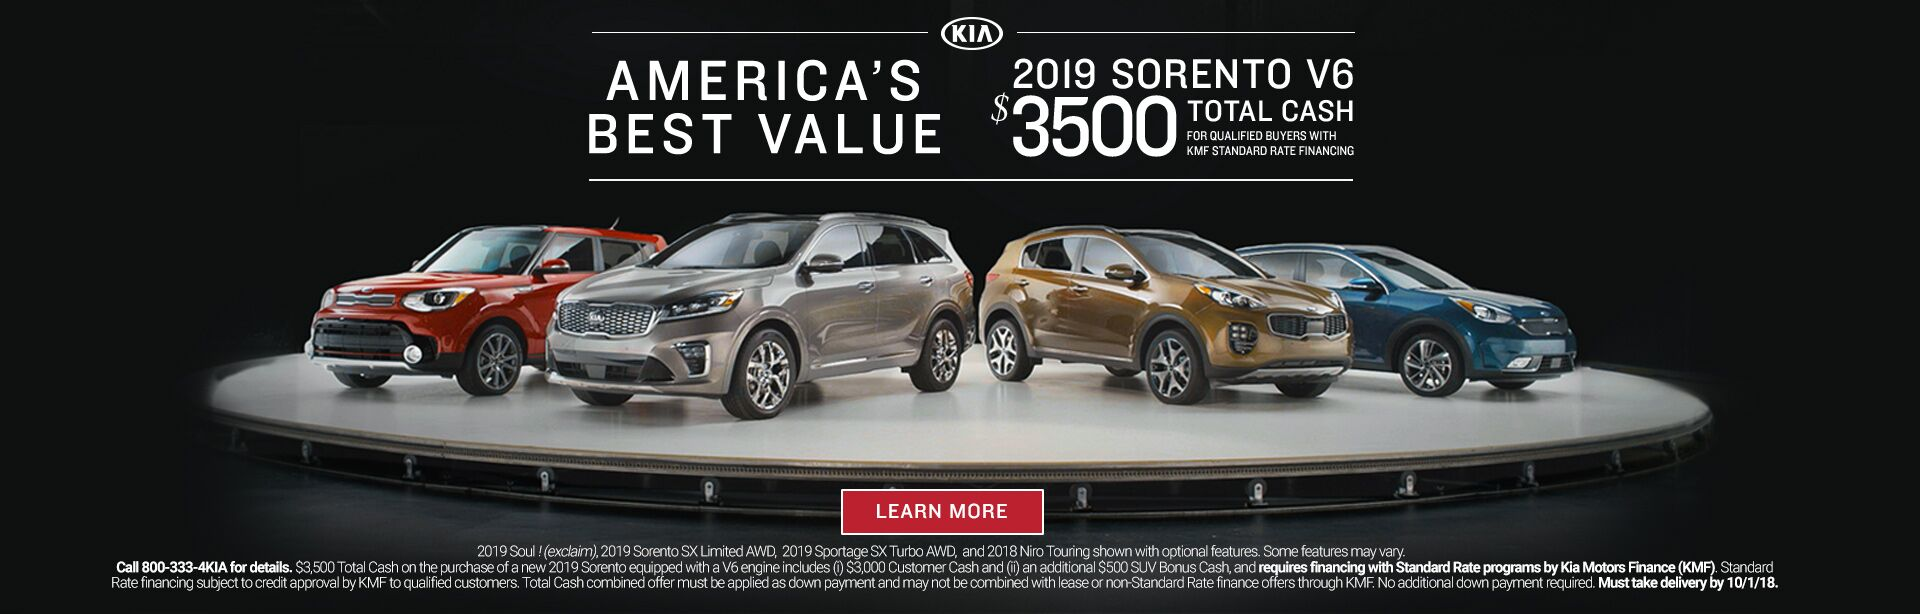 America's Best Value 2019 Sorento Moritz Kia Ft. Worth (West Fort Worth)